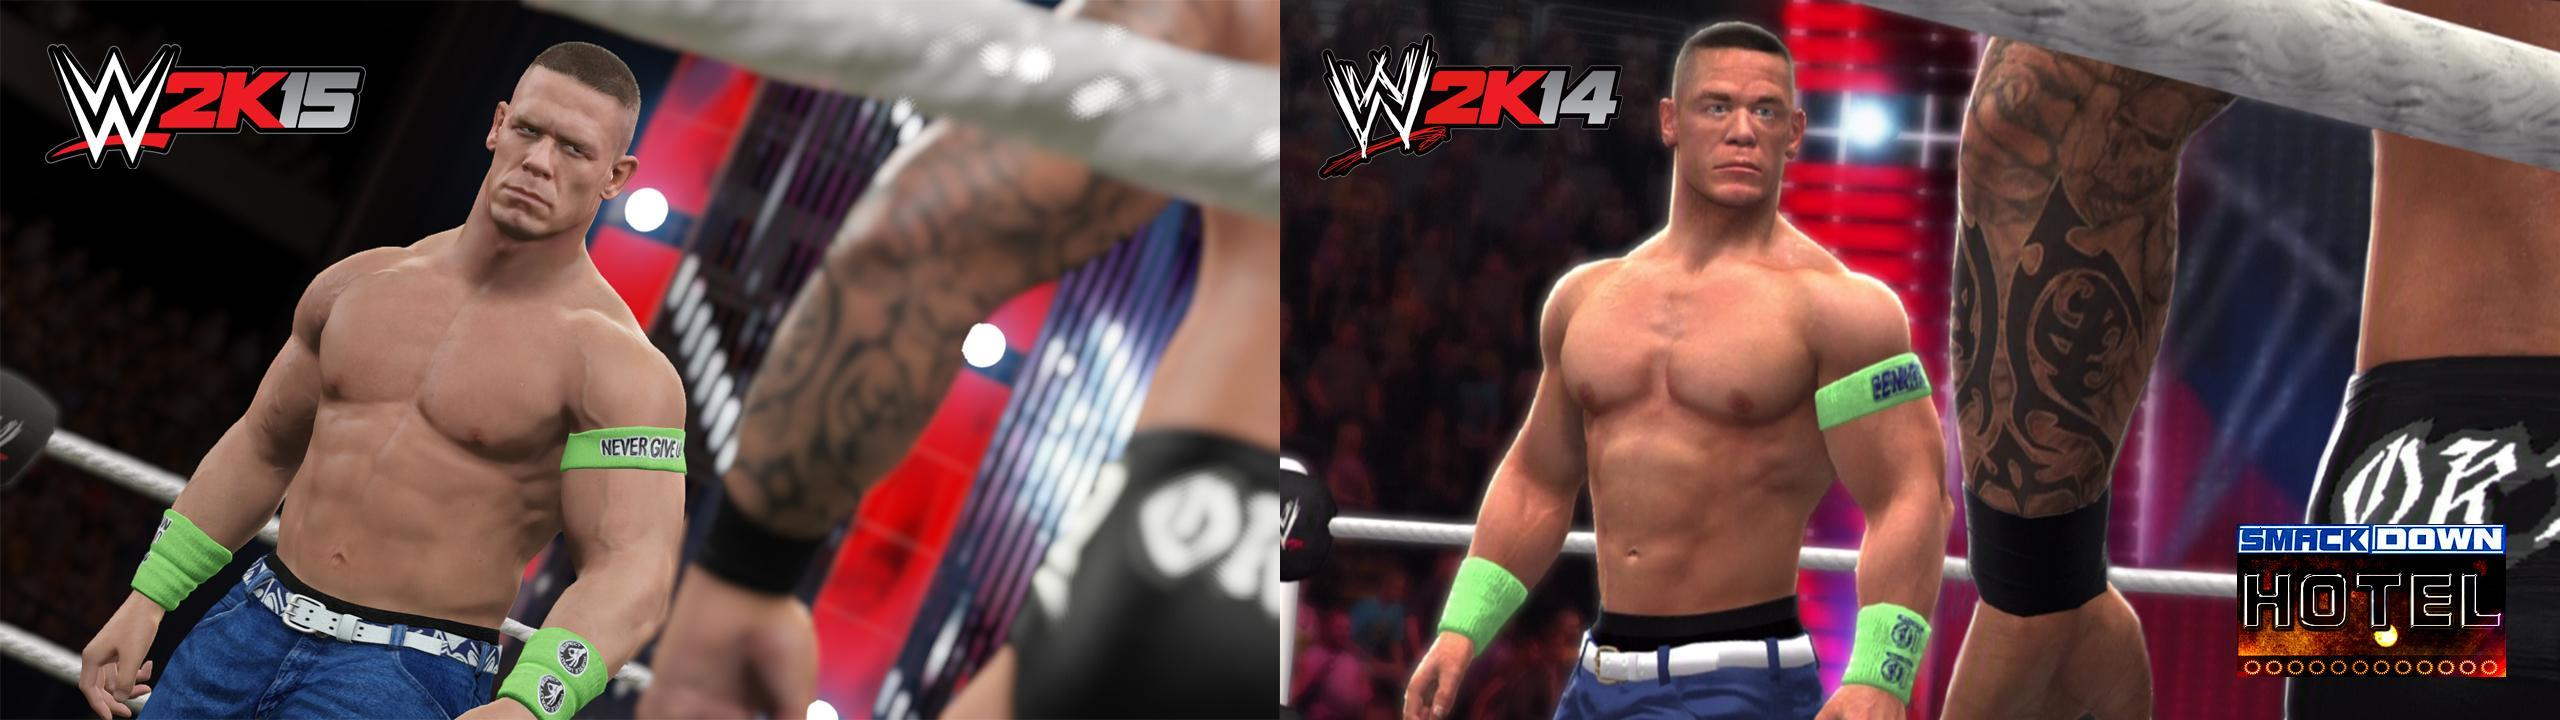 the john cena wwe2k15 screenshot recreated in 2k14 for comparison